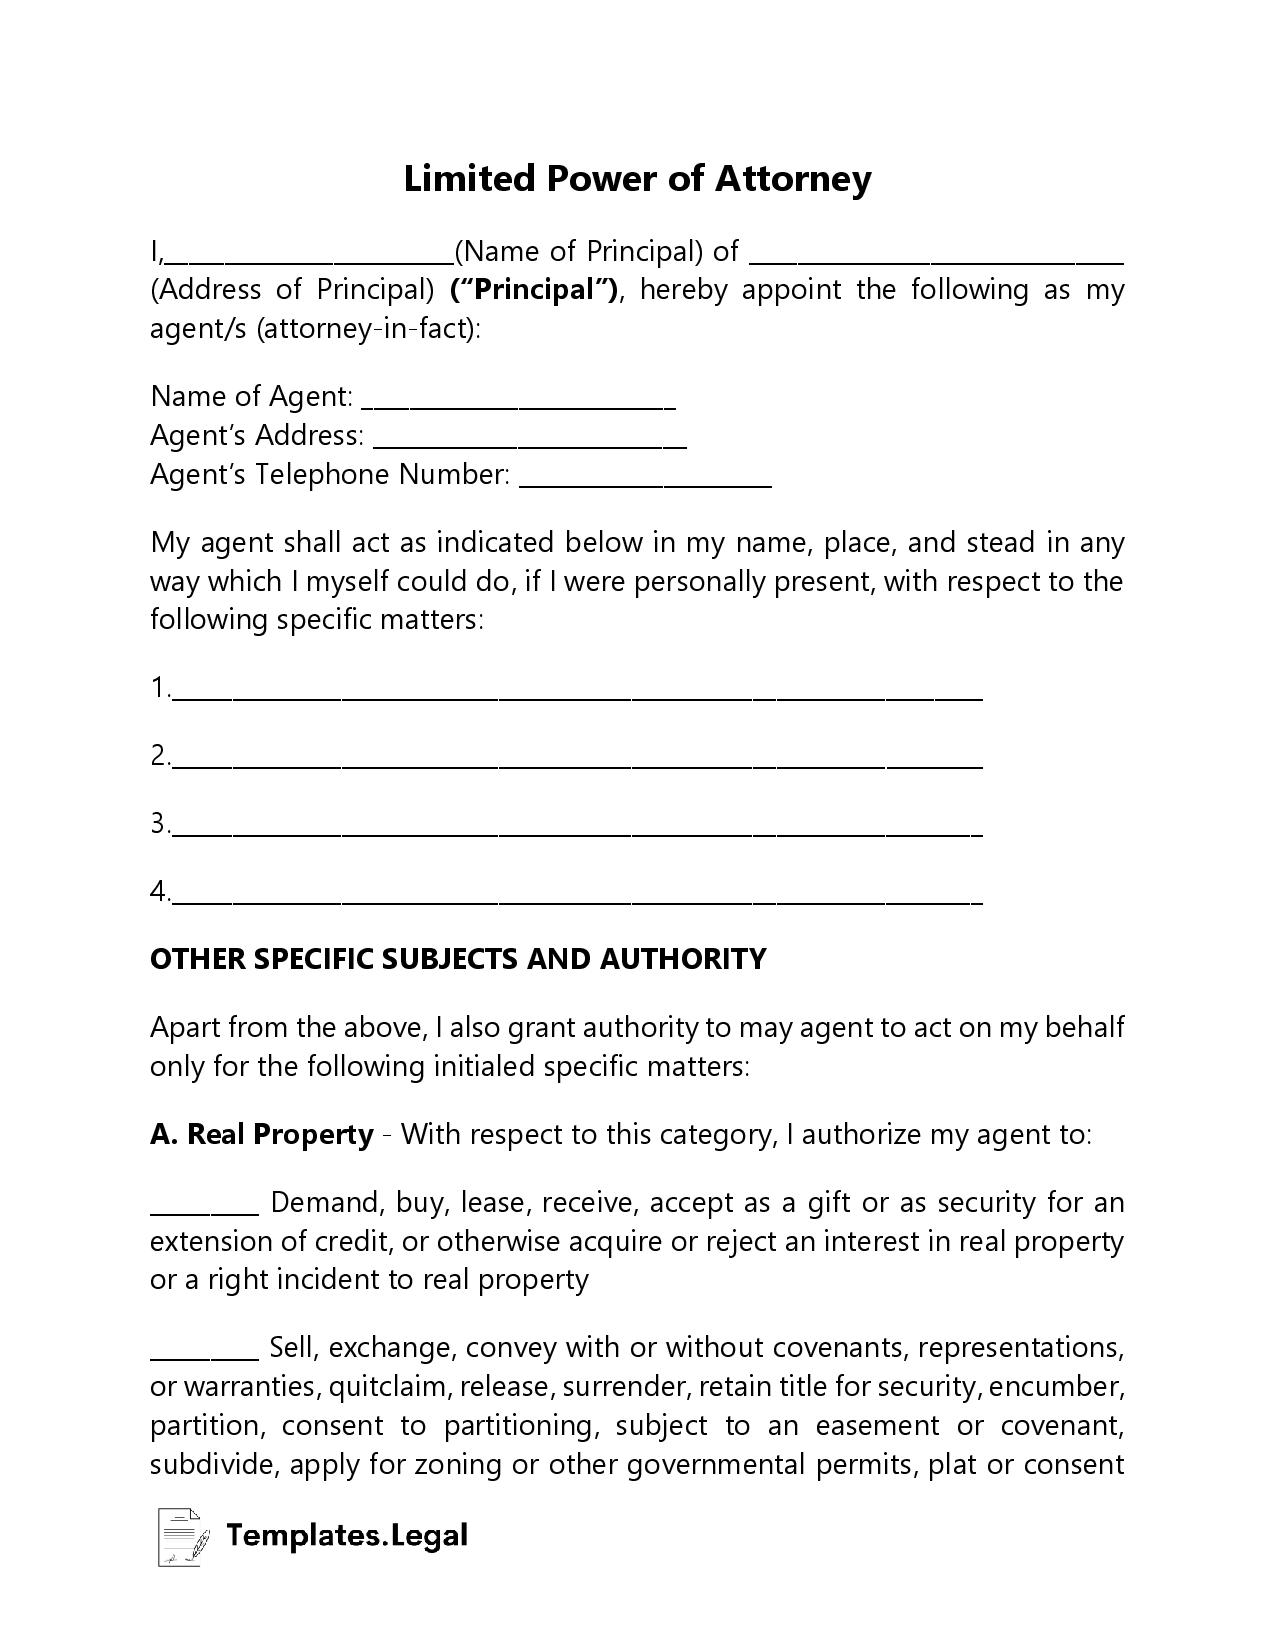 Limited Power of Attorney - Templates.Legal